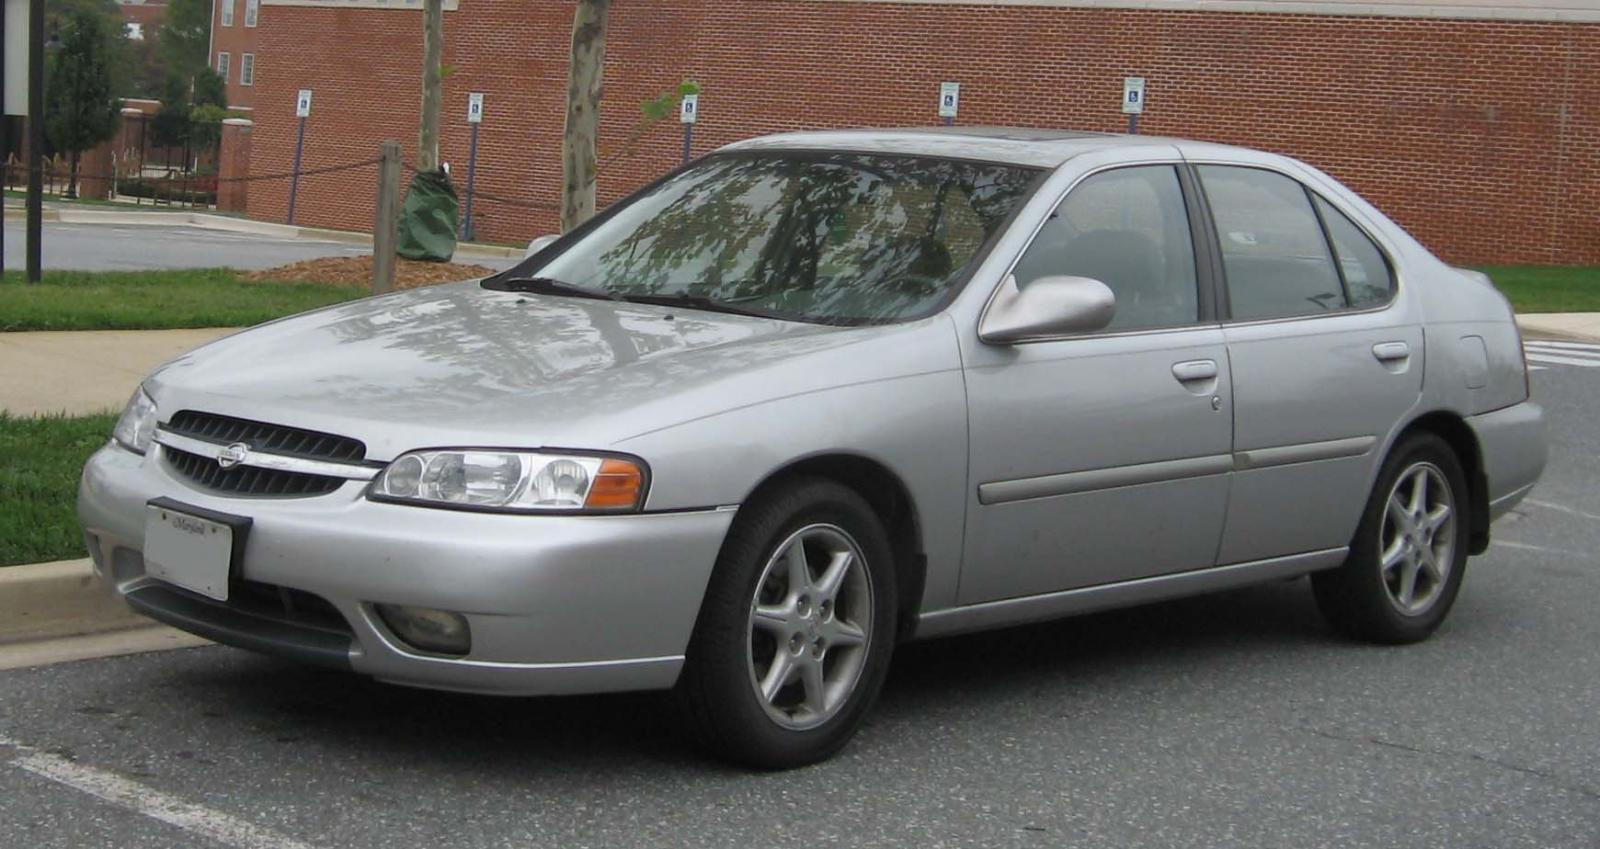 2000 Nissan Altima - Information and photos - ZombieDrive